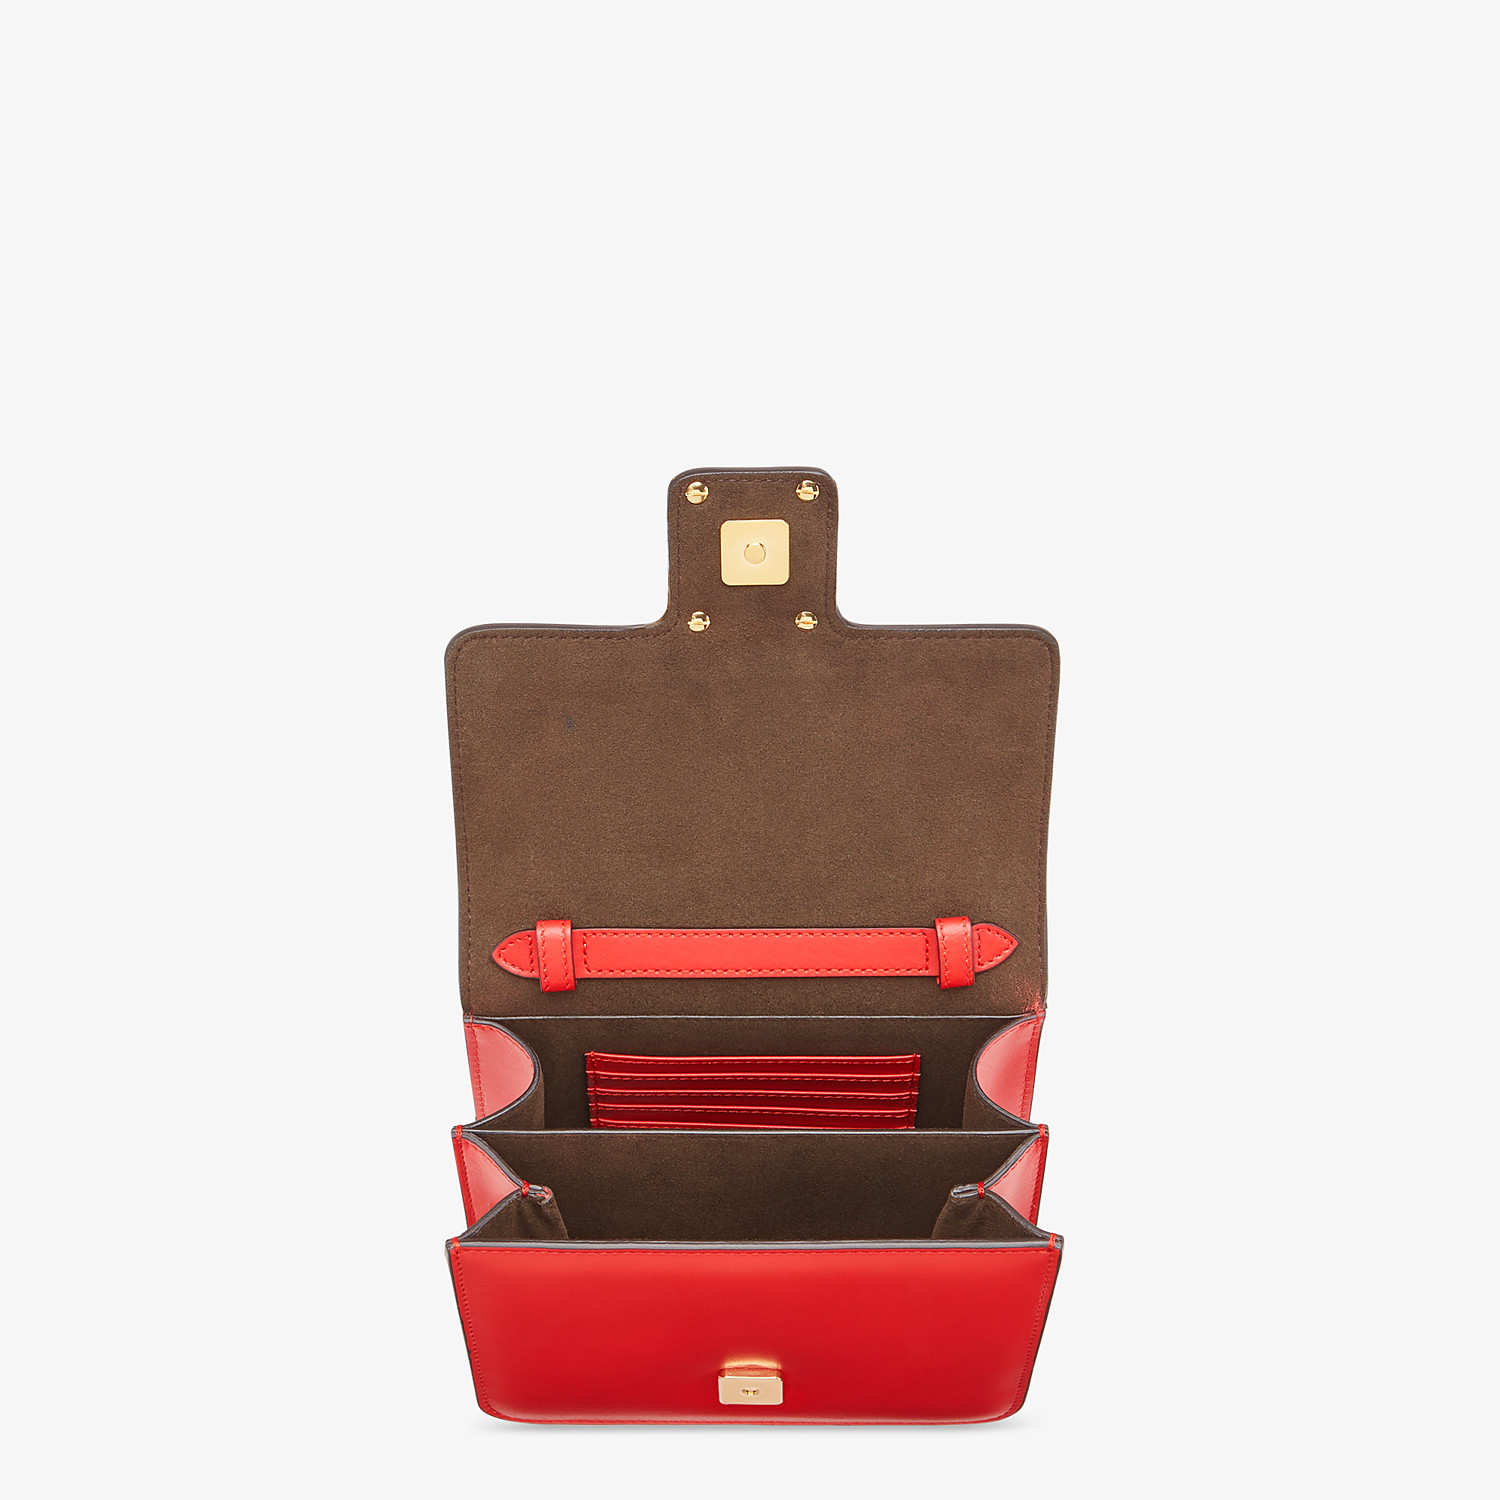 FENDI FENDI FAB - Red leather bag - view 4 detail